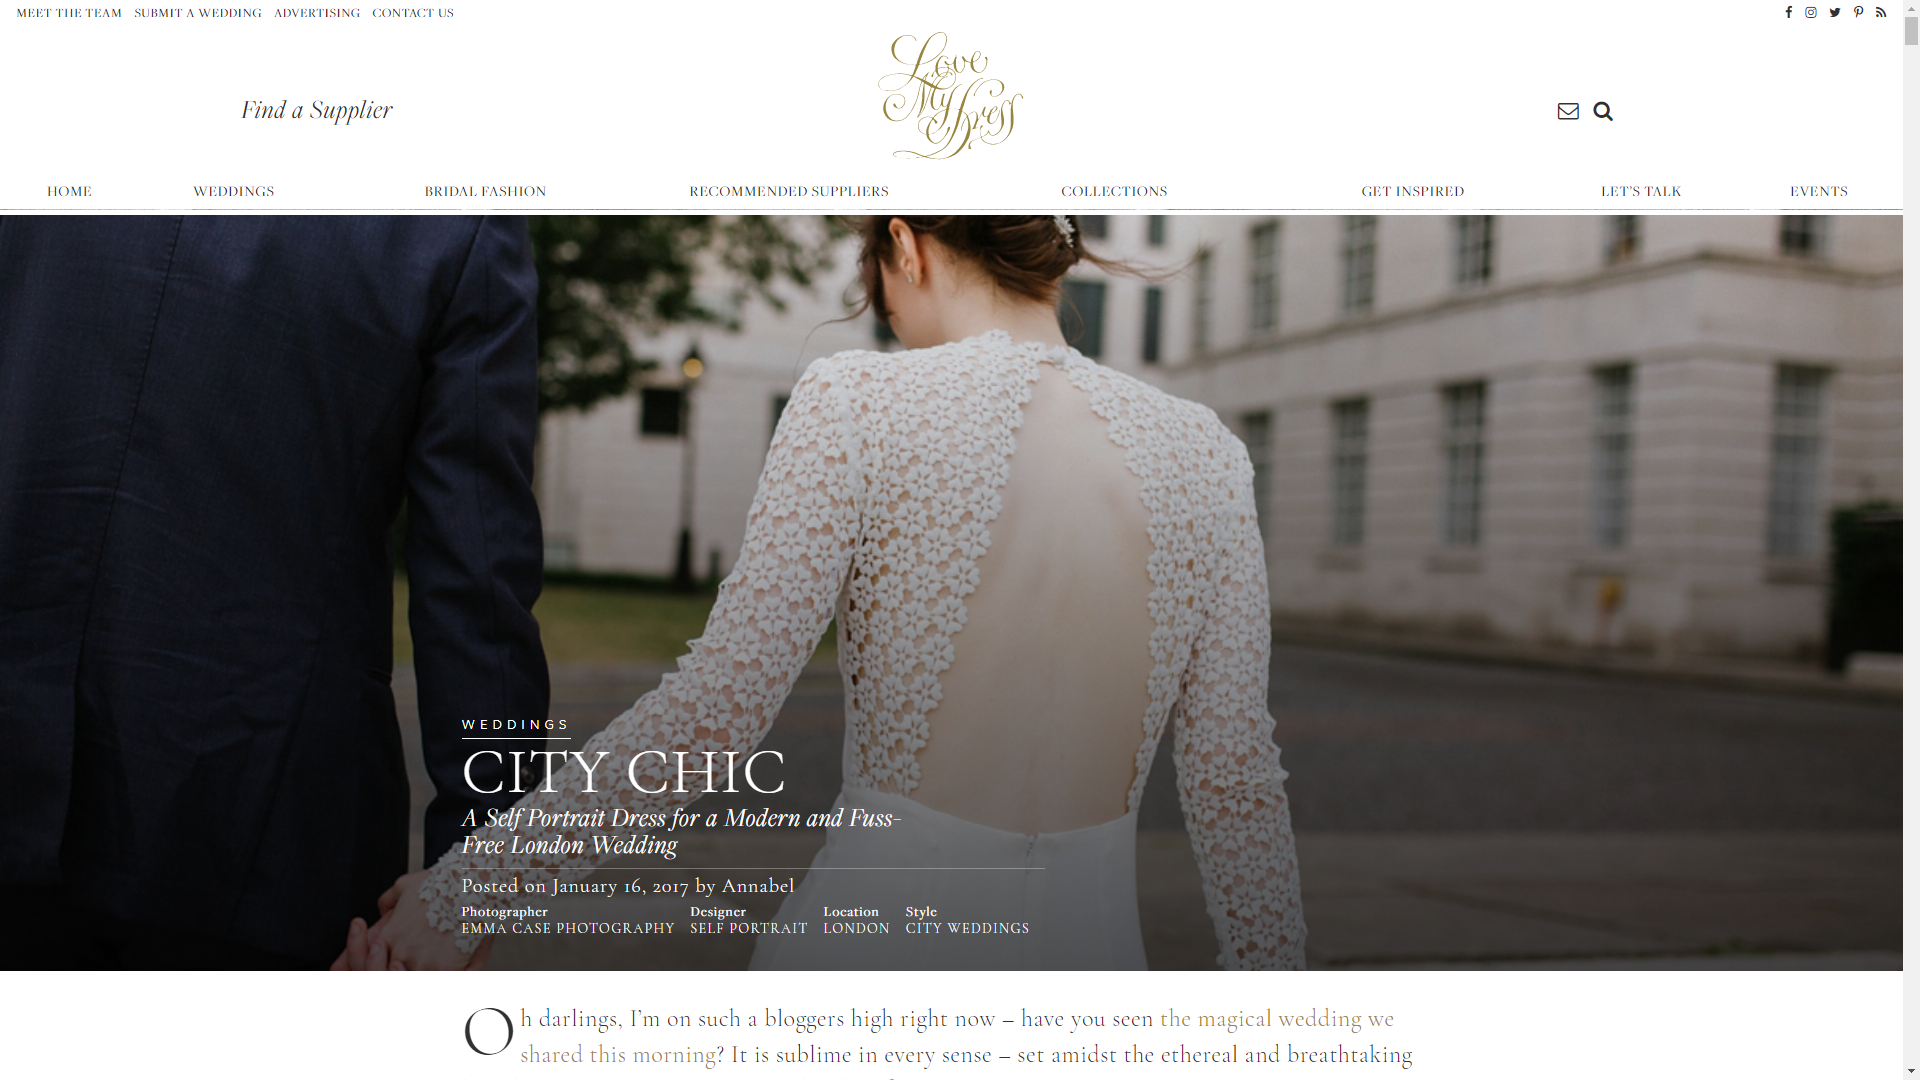 A Self Portrait Dress for a Modern and Fuss-Free London Wedding